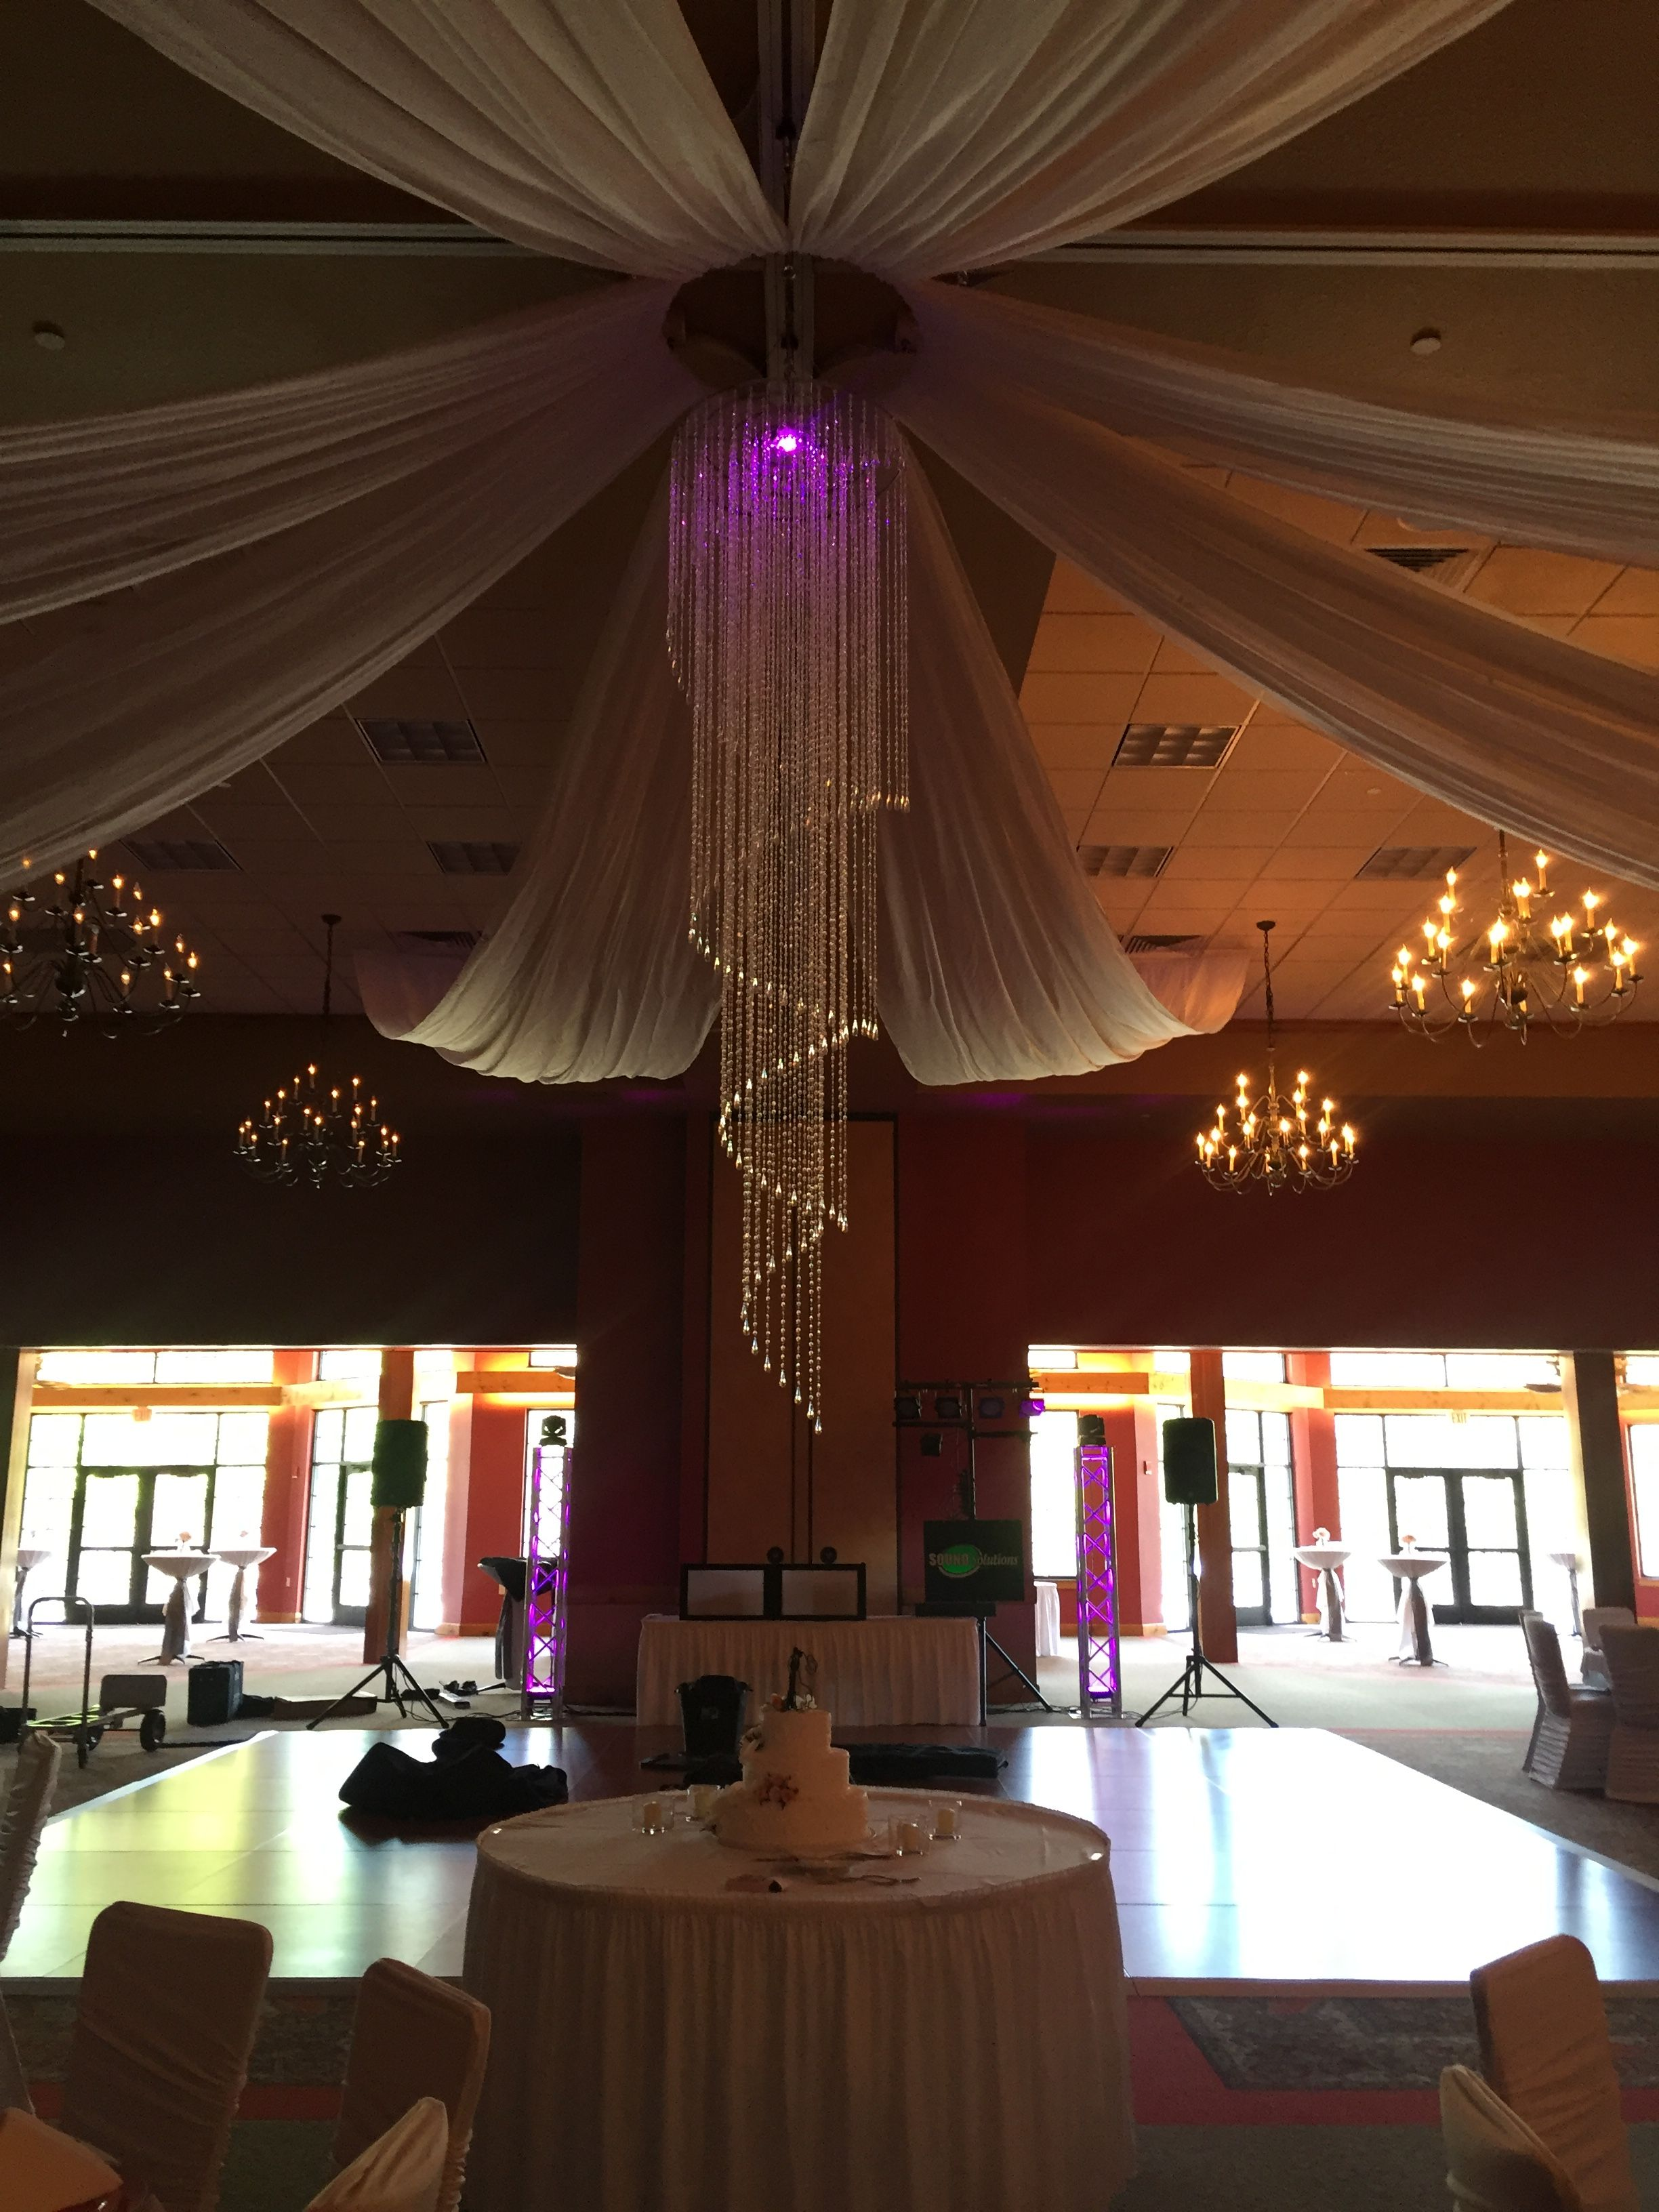 Wedding Ceiling Draping With Chandelier Wedding Ceiling Ceiling Draping Wedding Ceiling Decorations